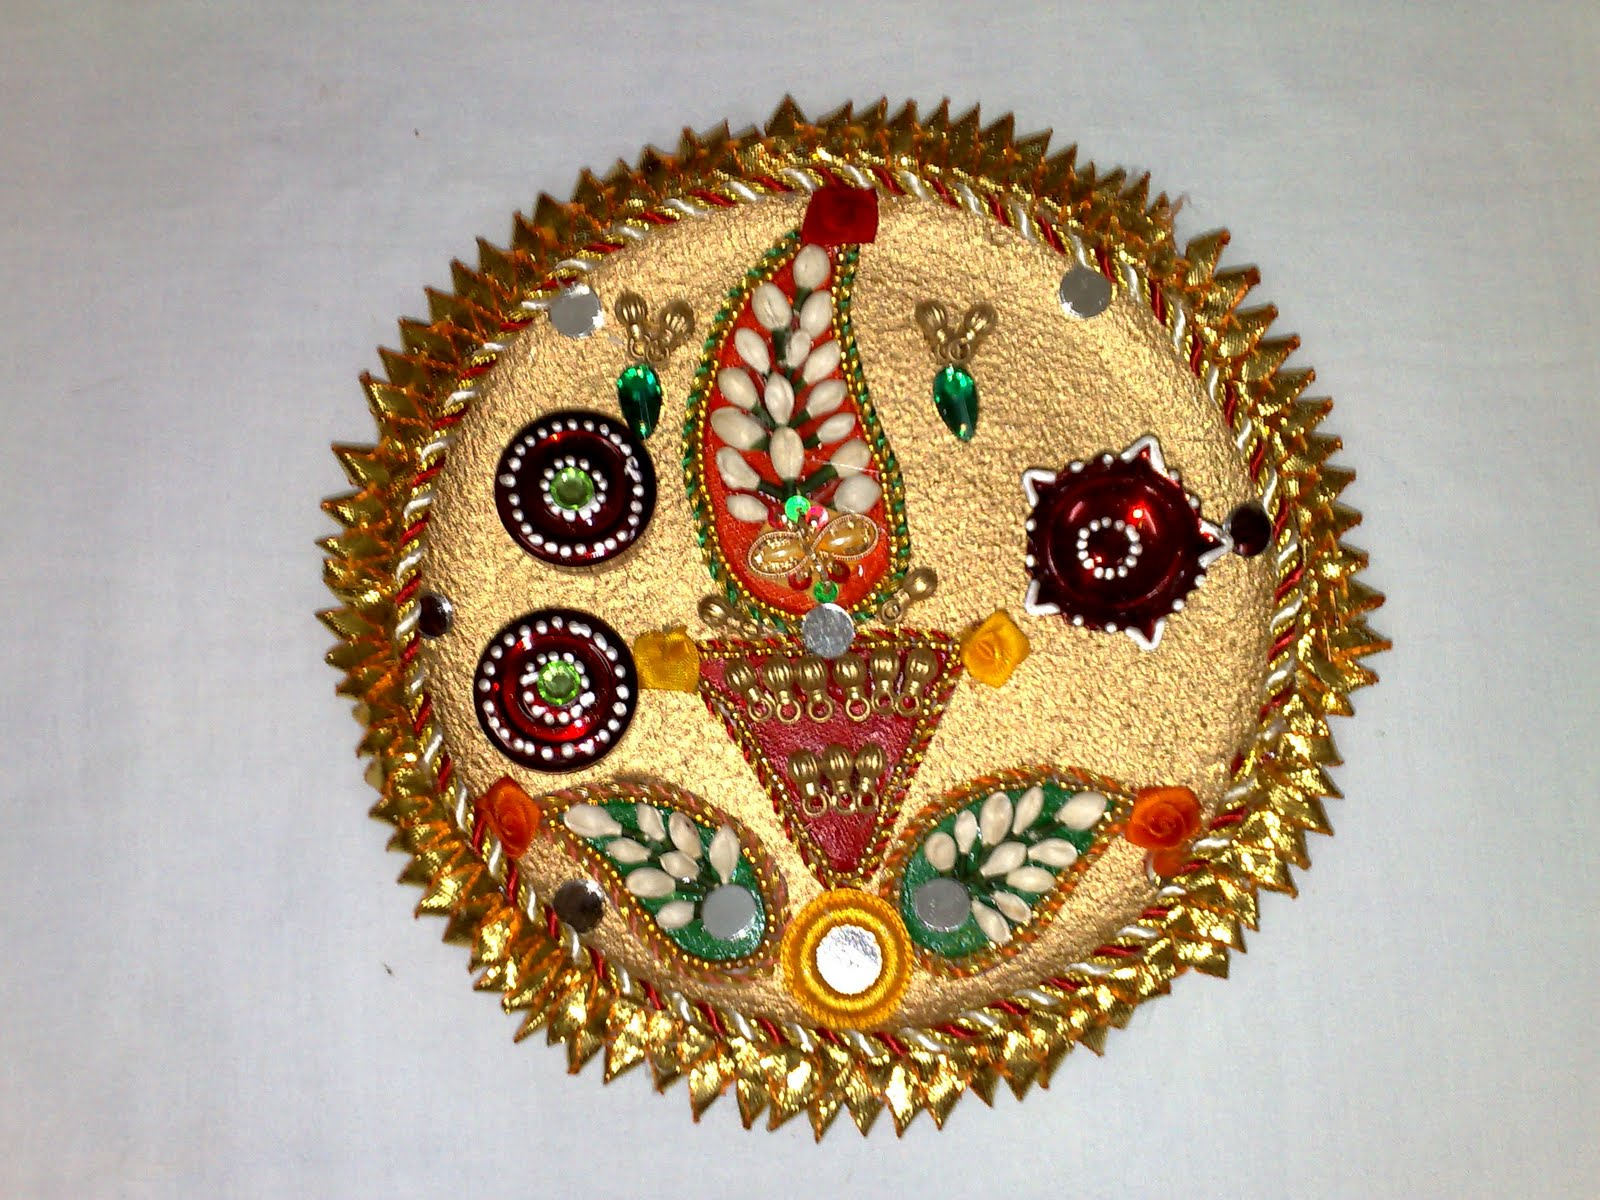 Thali aarti wedding decorative decorated for Aarti thali decoration pictures navratri